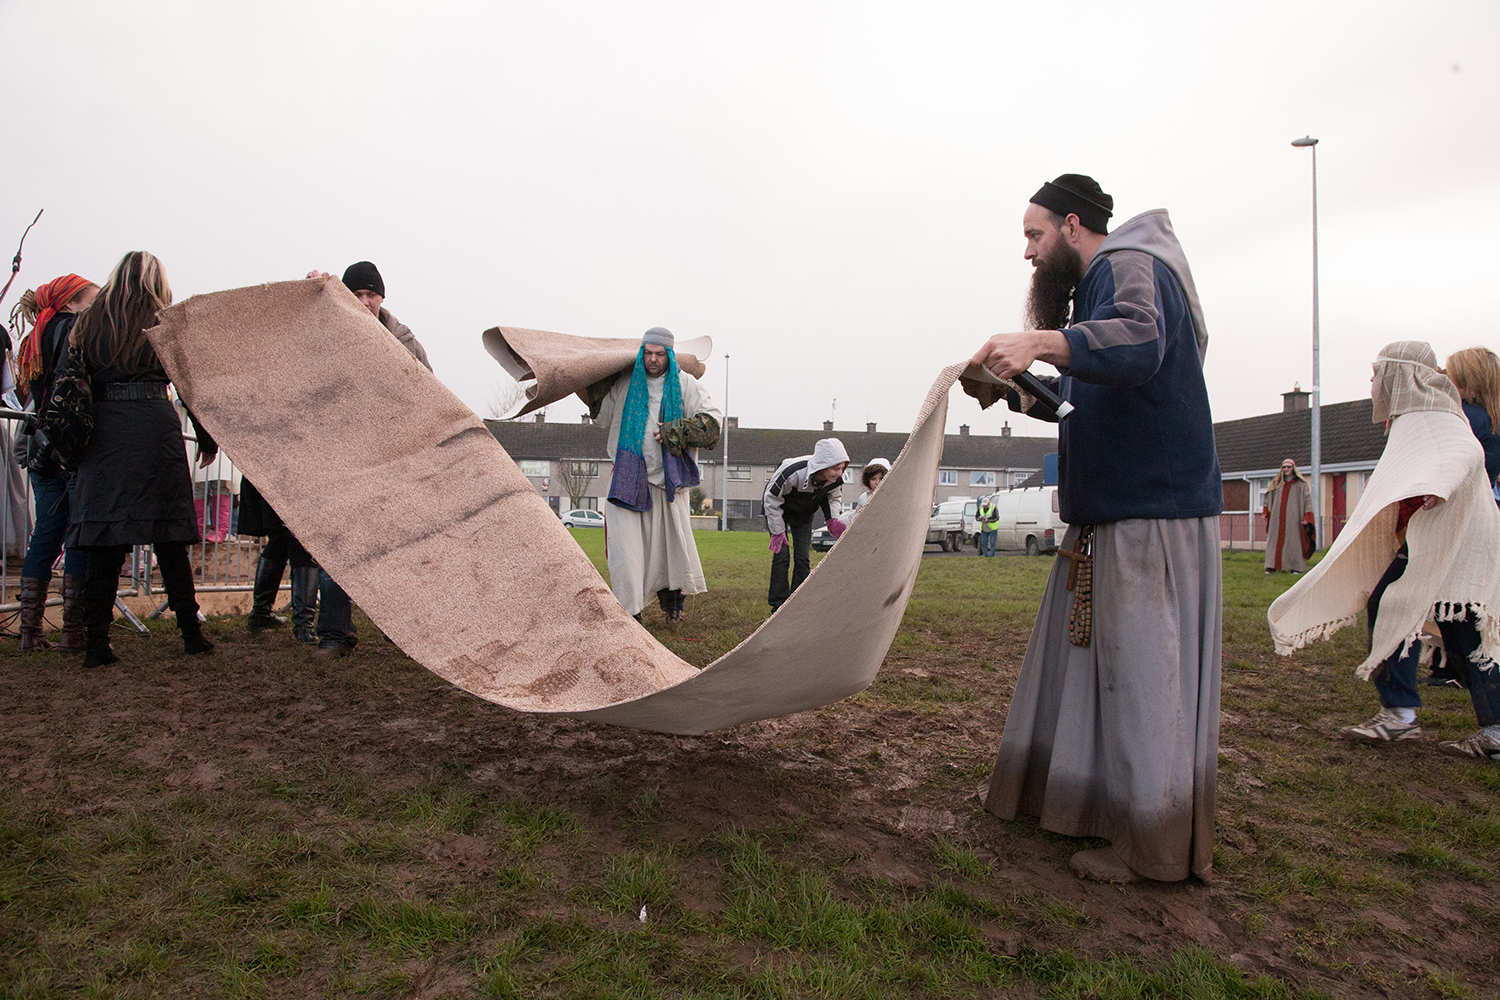 A documentary photograph of monk helping prepare a live nativity scene in Moyross, Limerick, Ireland